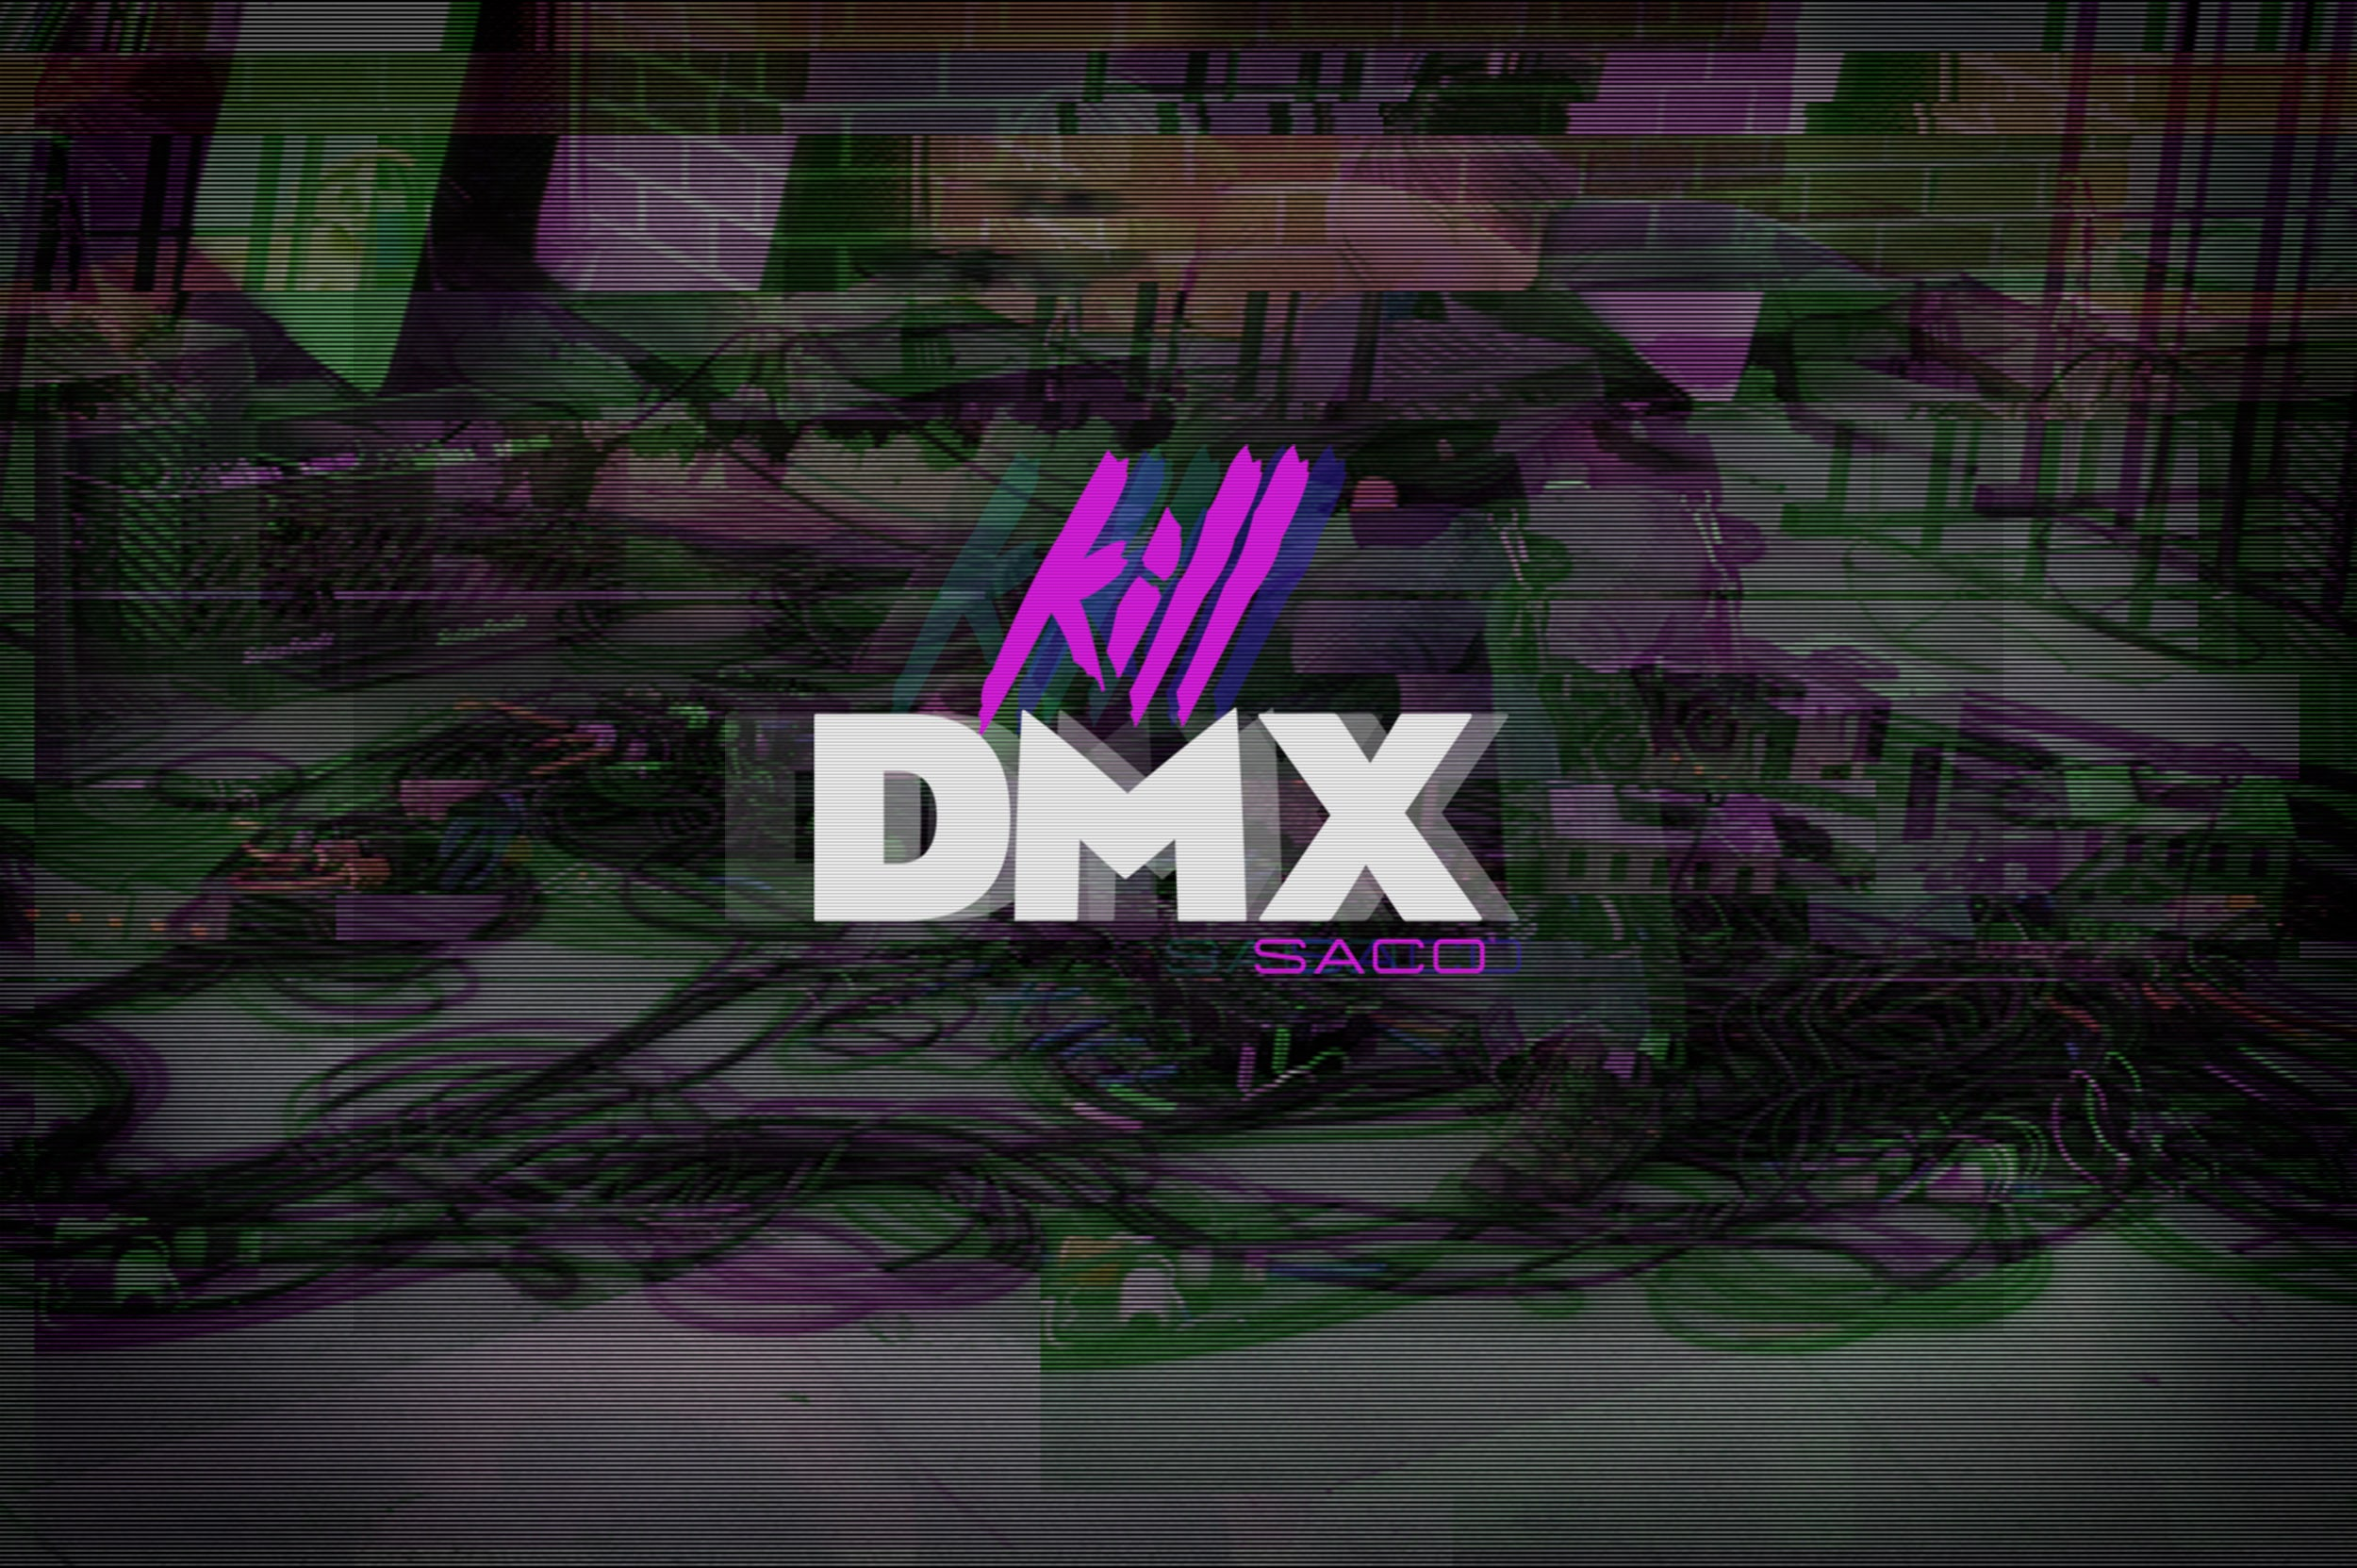 KILL DMX WALLPAPER